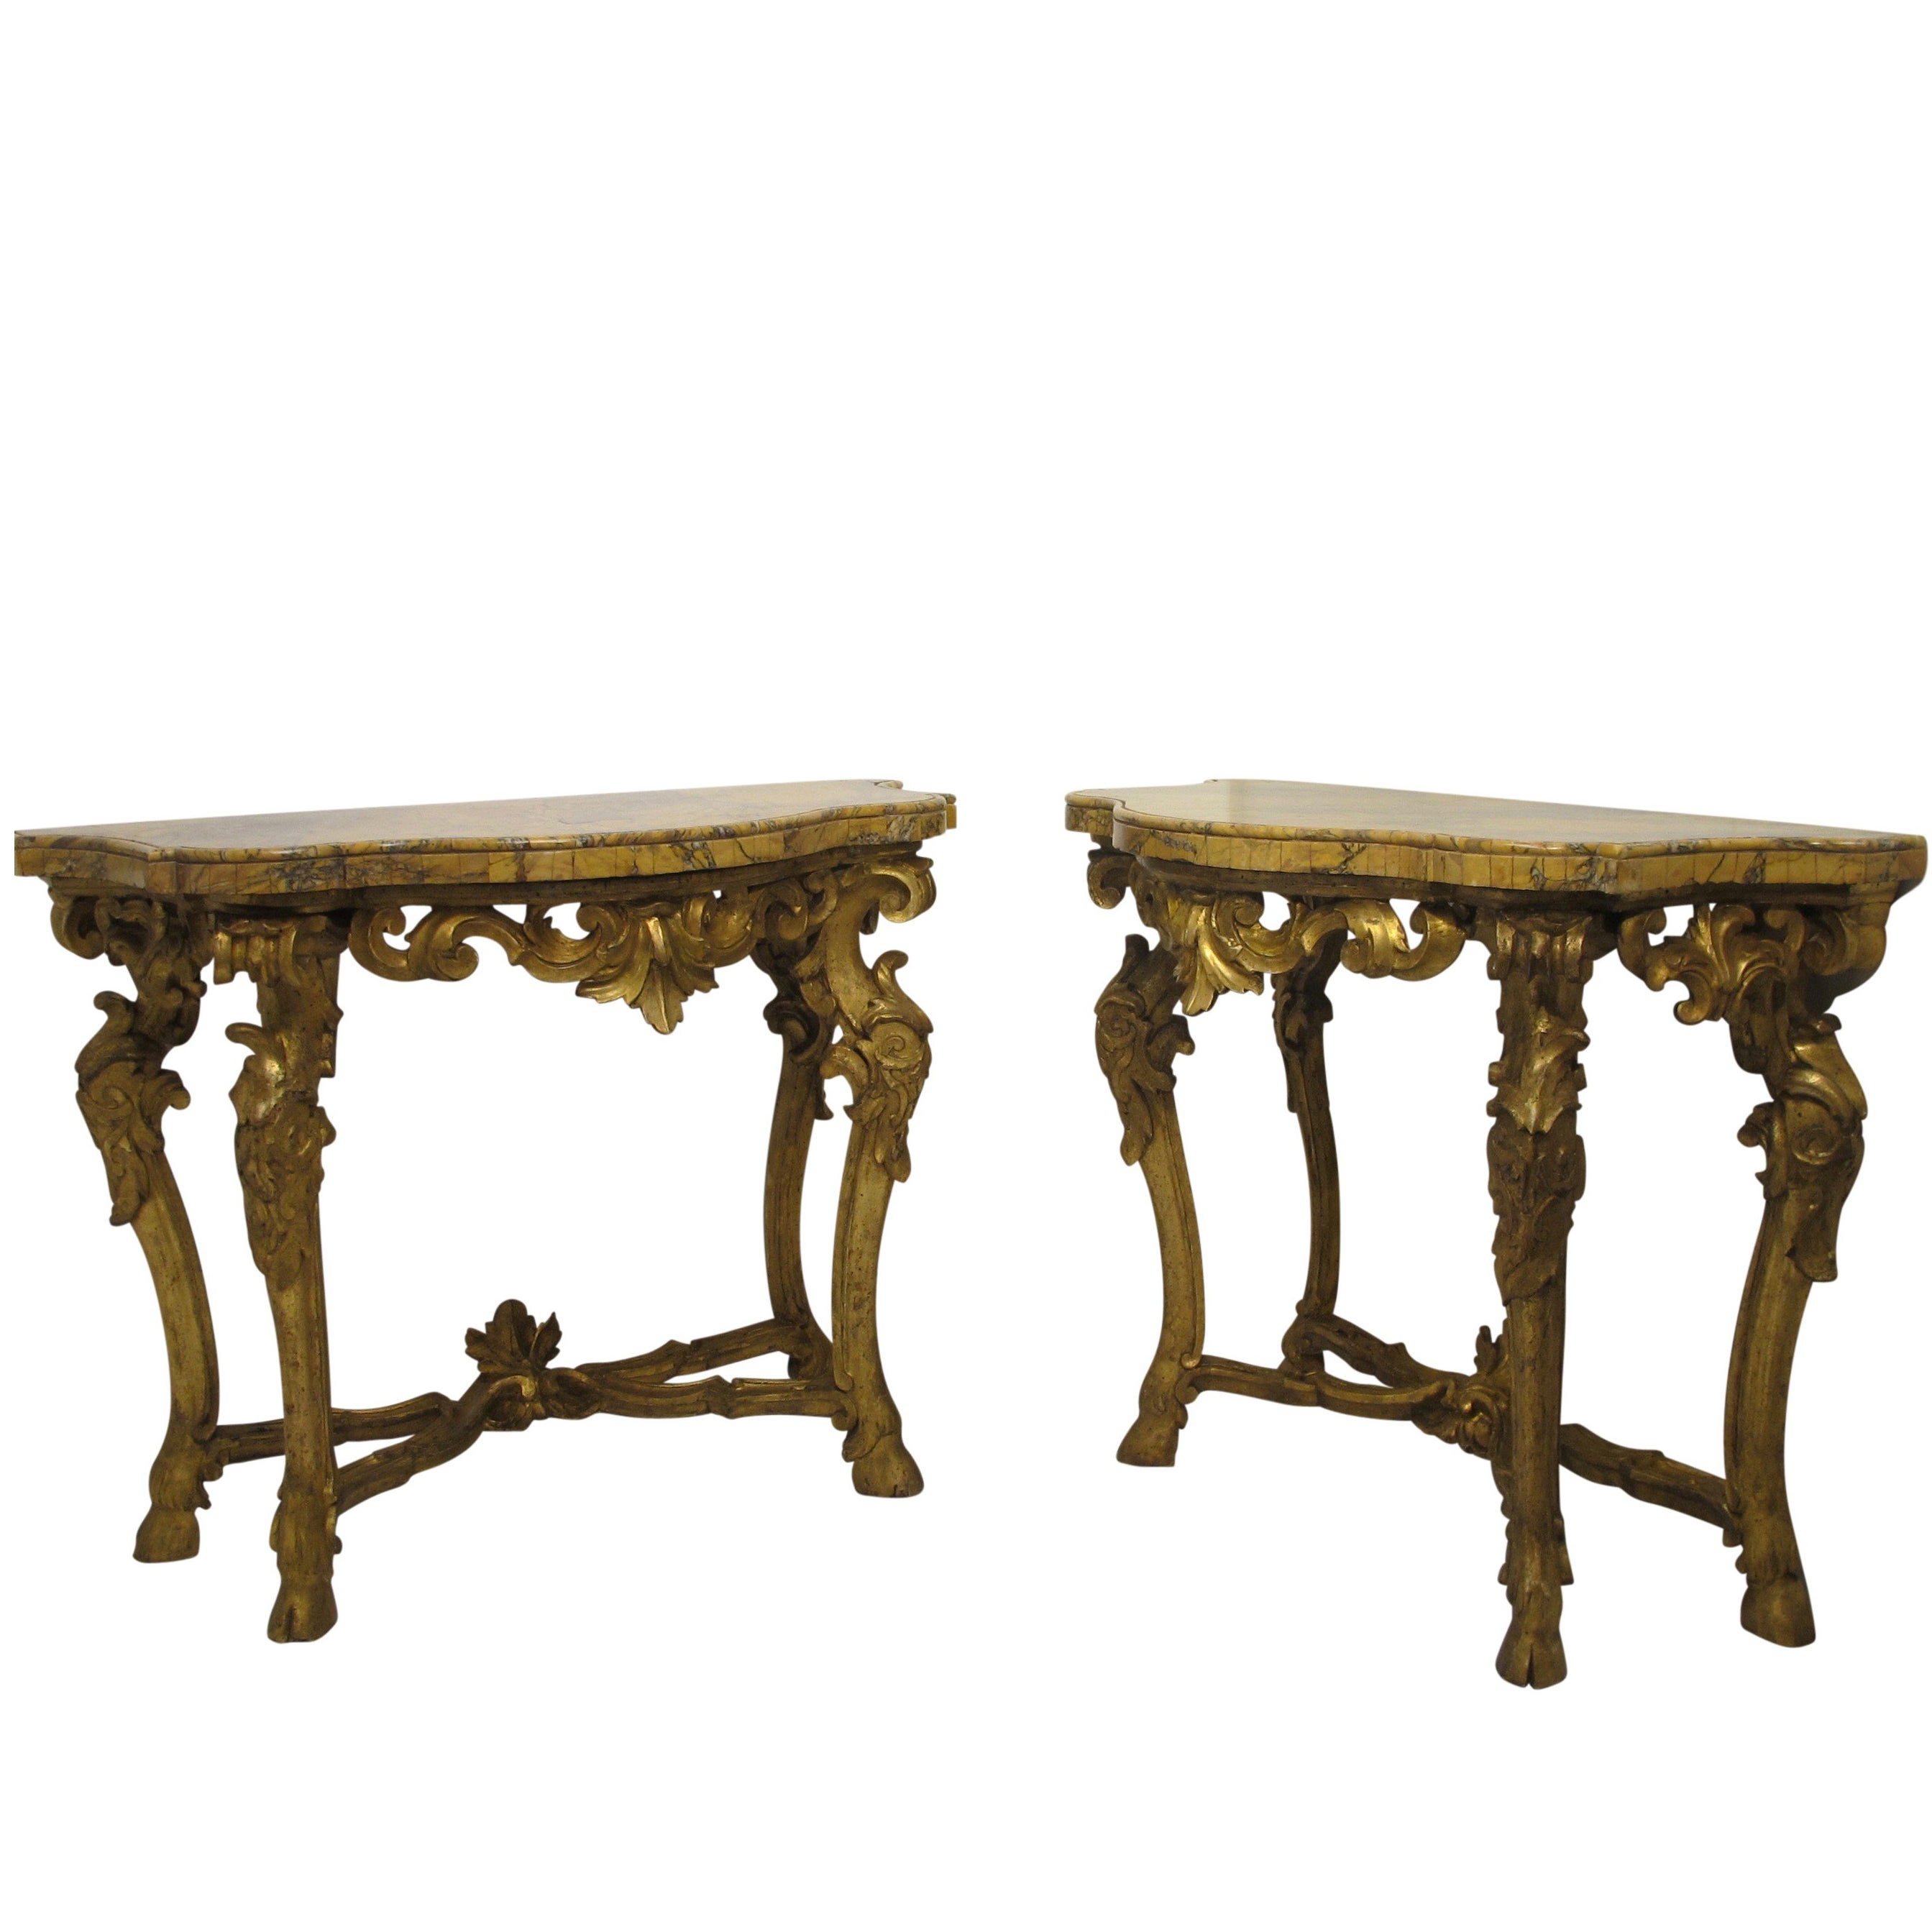 Pair of Carved & Gilt Console Tables with Breche Marble Tops Italian, circa 1780